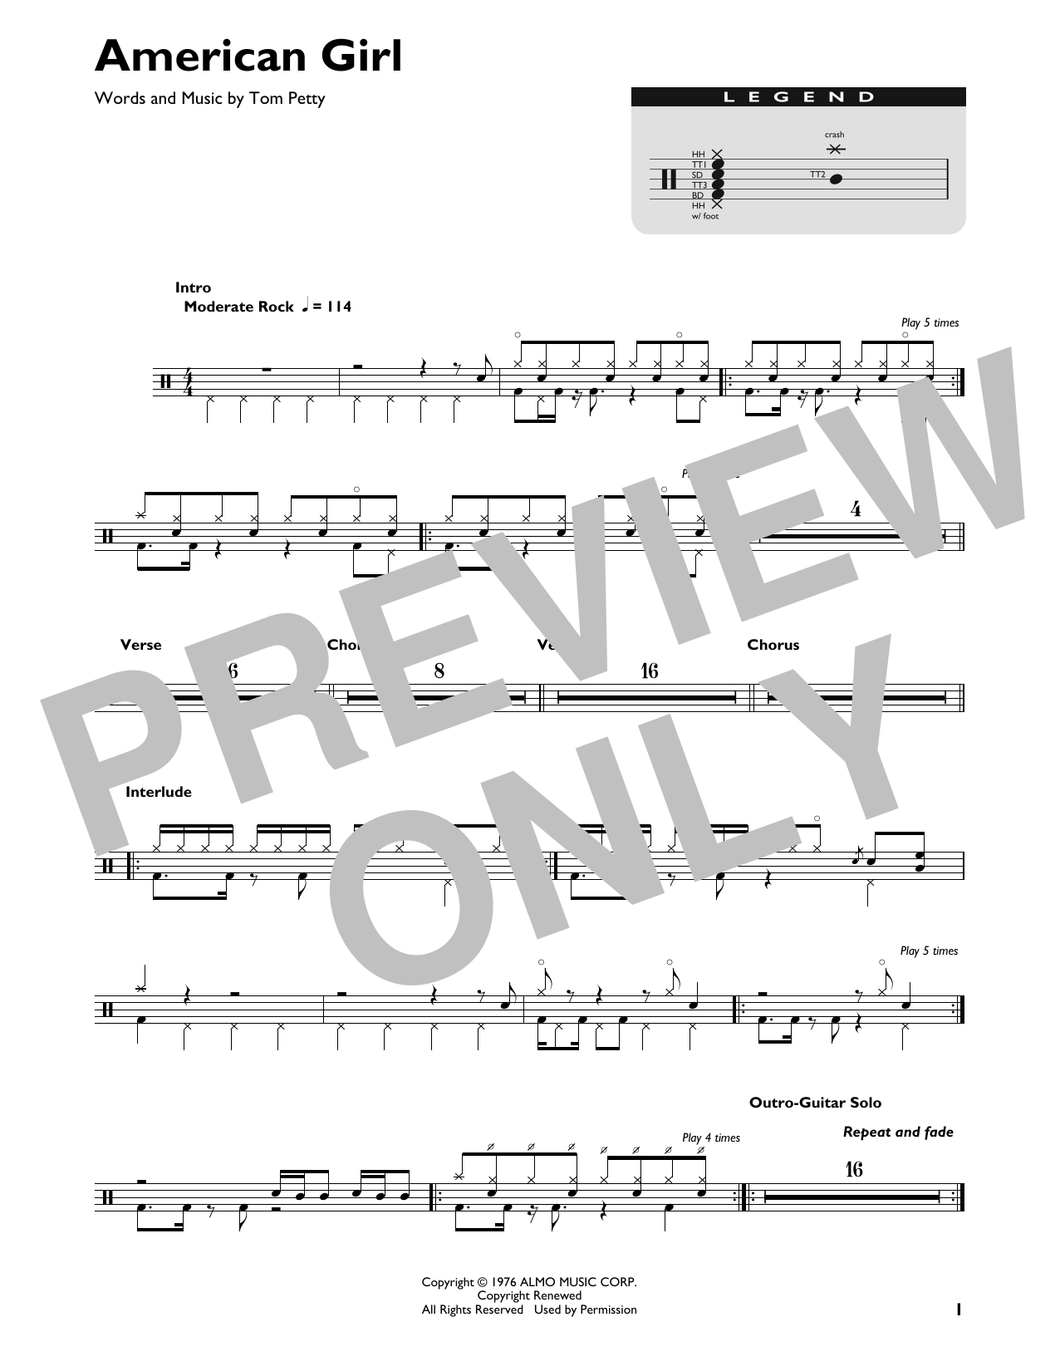 American Girl - Tom Petty and the Heartbreakers - Full Drum Transcription / Drum Sheet Music - SheetMusicDirect DT